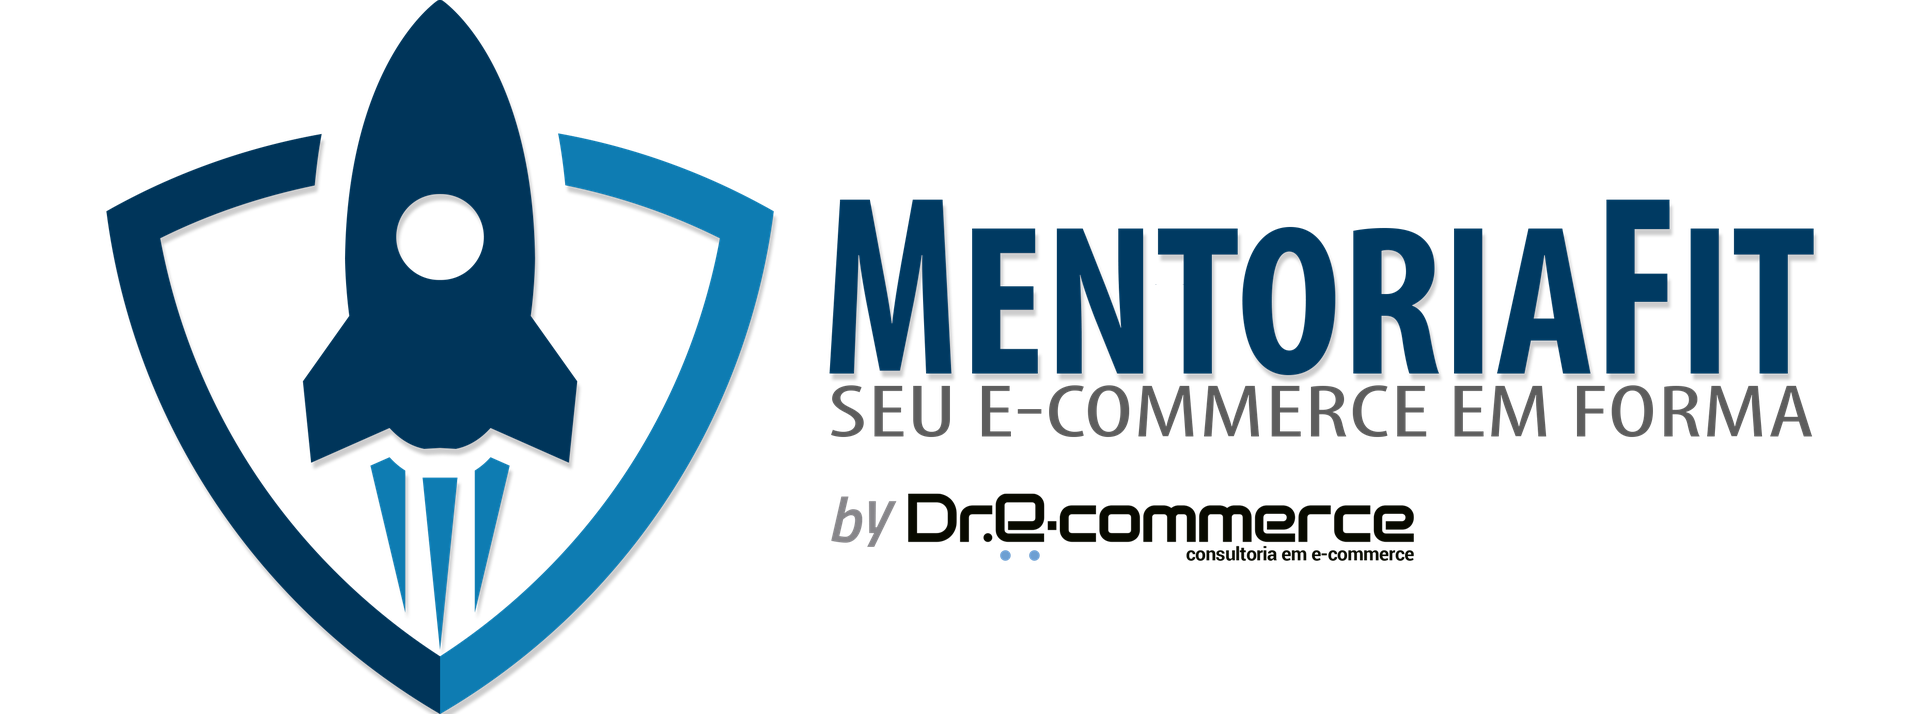 MentoriaFit - Seu e-commerce em Forma - by Dr. e-commerce